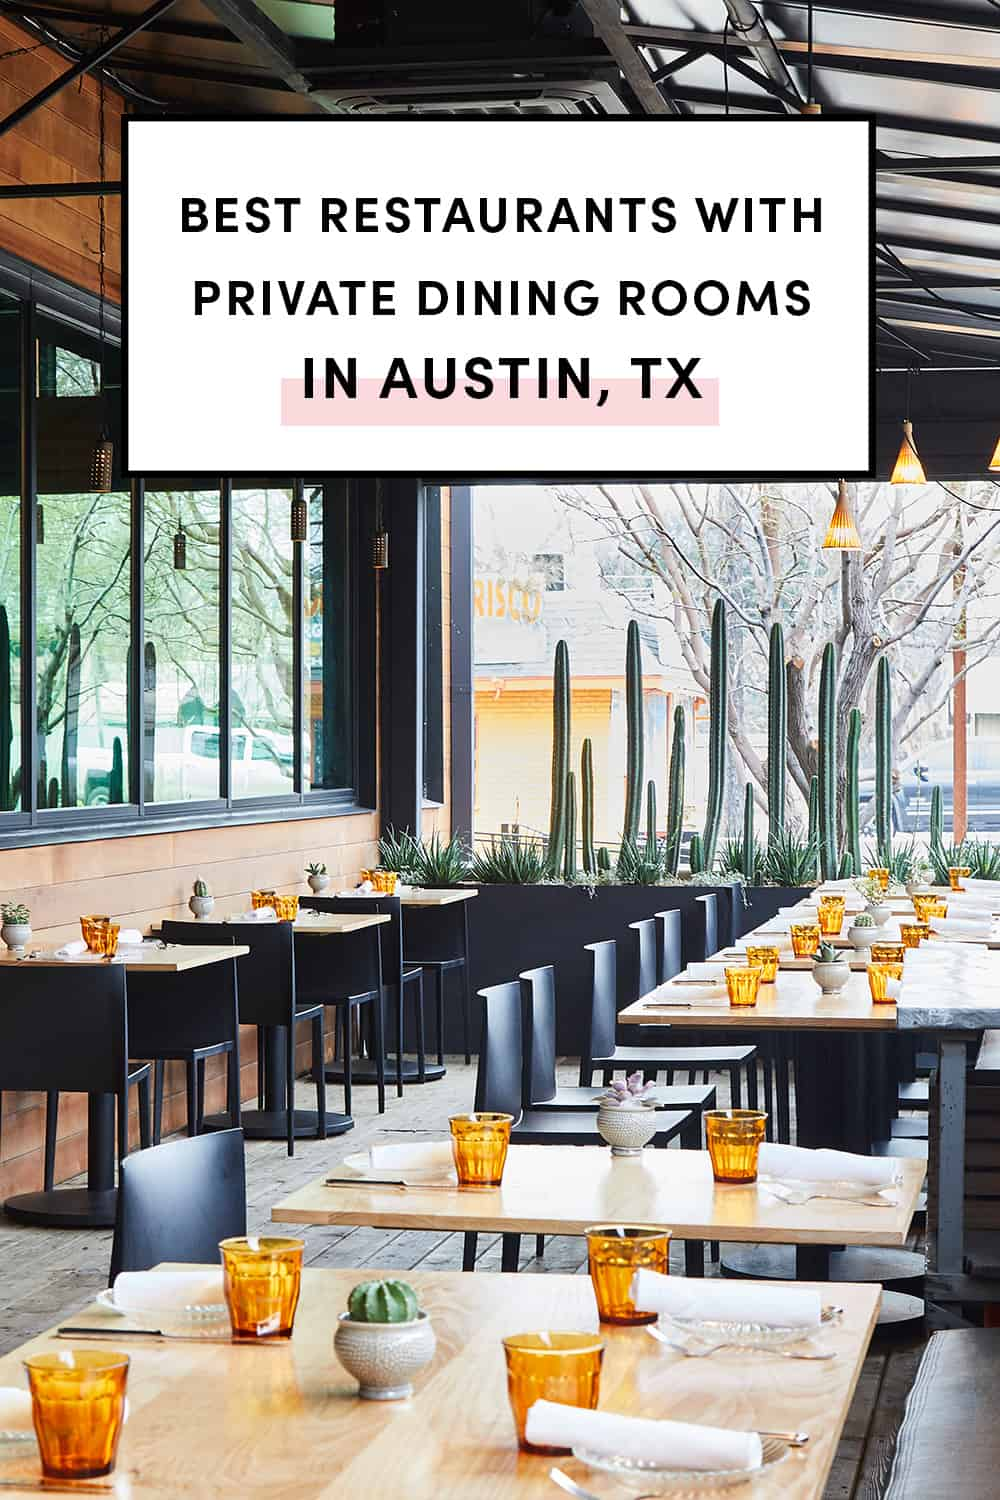 Best Restaurants with private dining rooms in Austin, TX